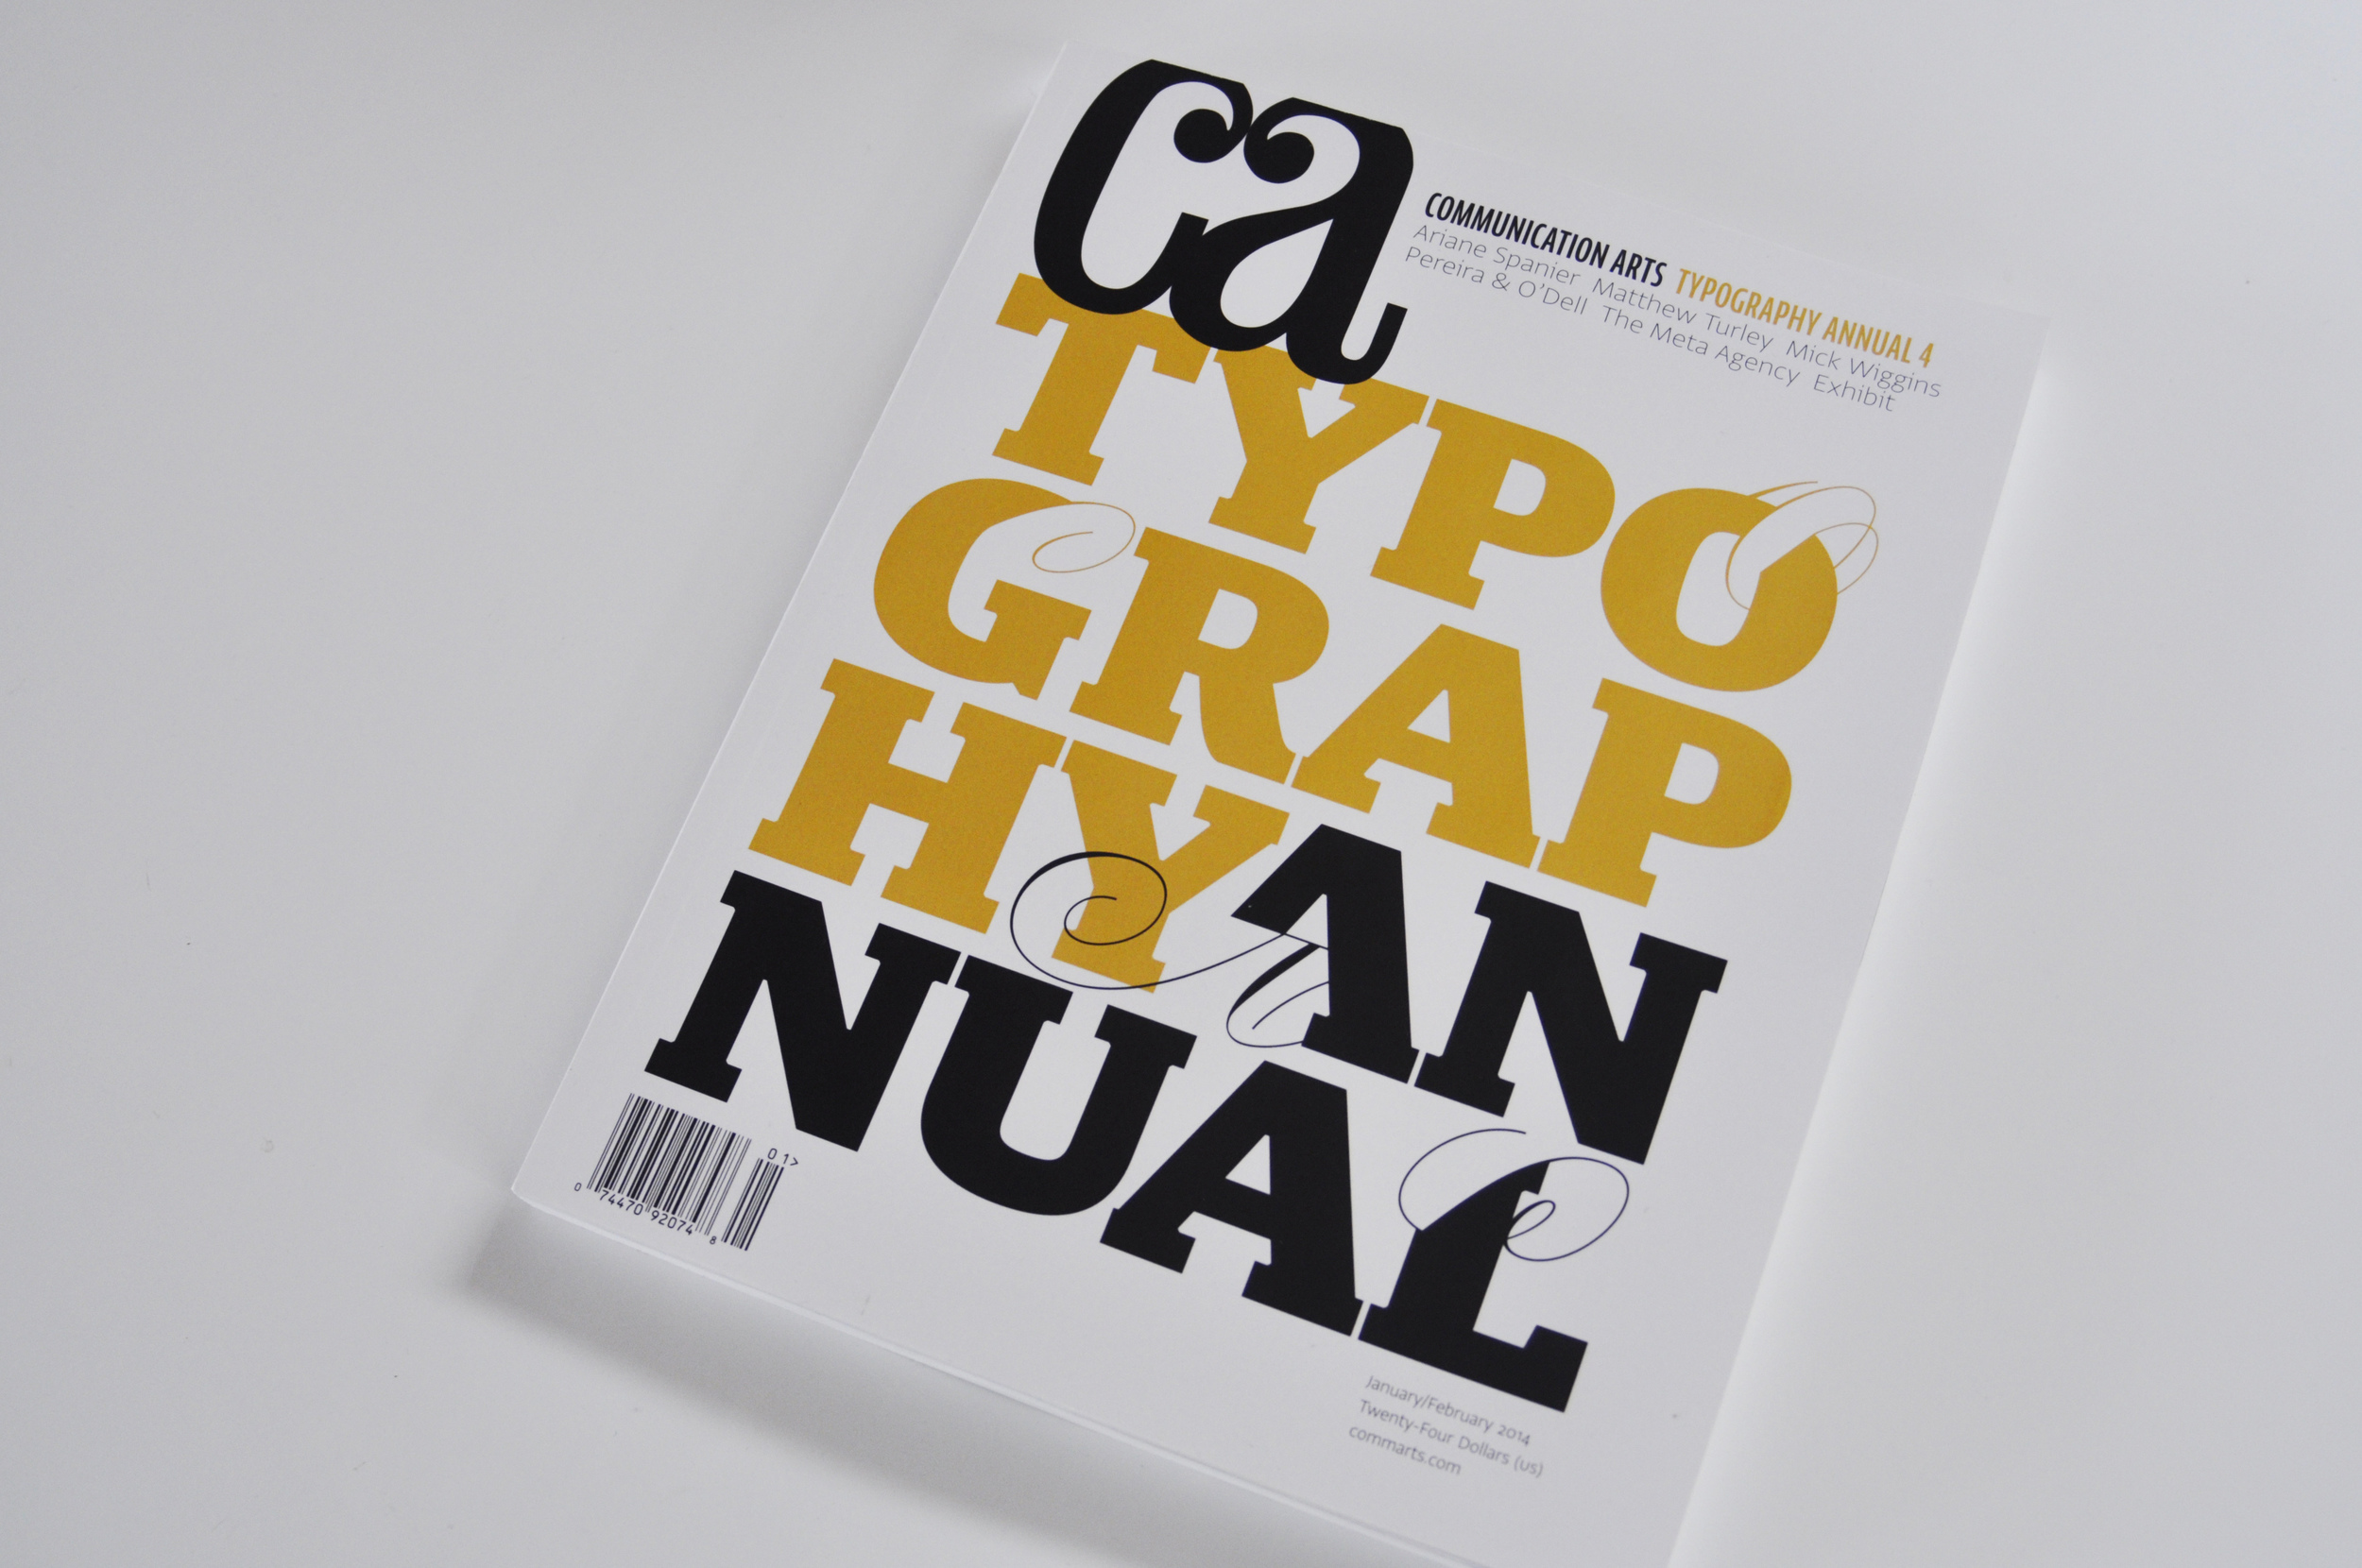 Bryan_Patrick_Todd_Communication_Arts_Typography_annual.jpg